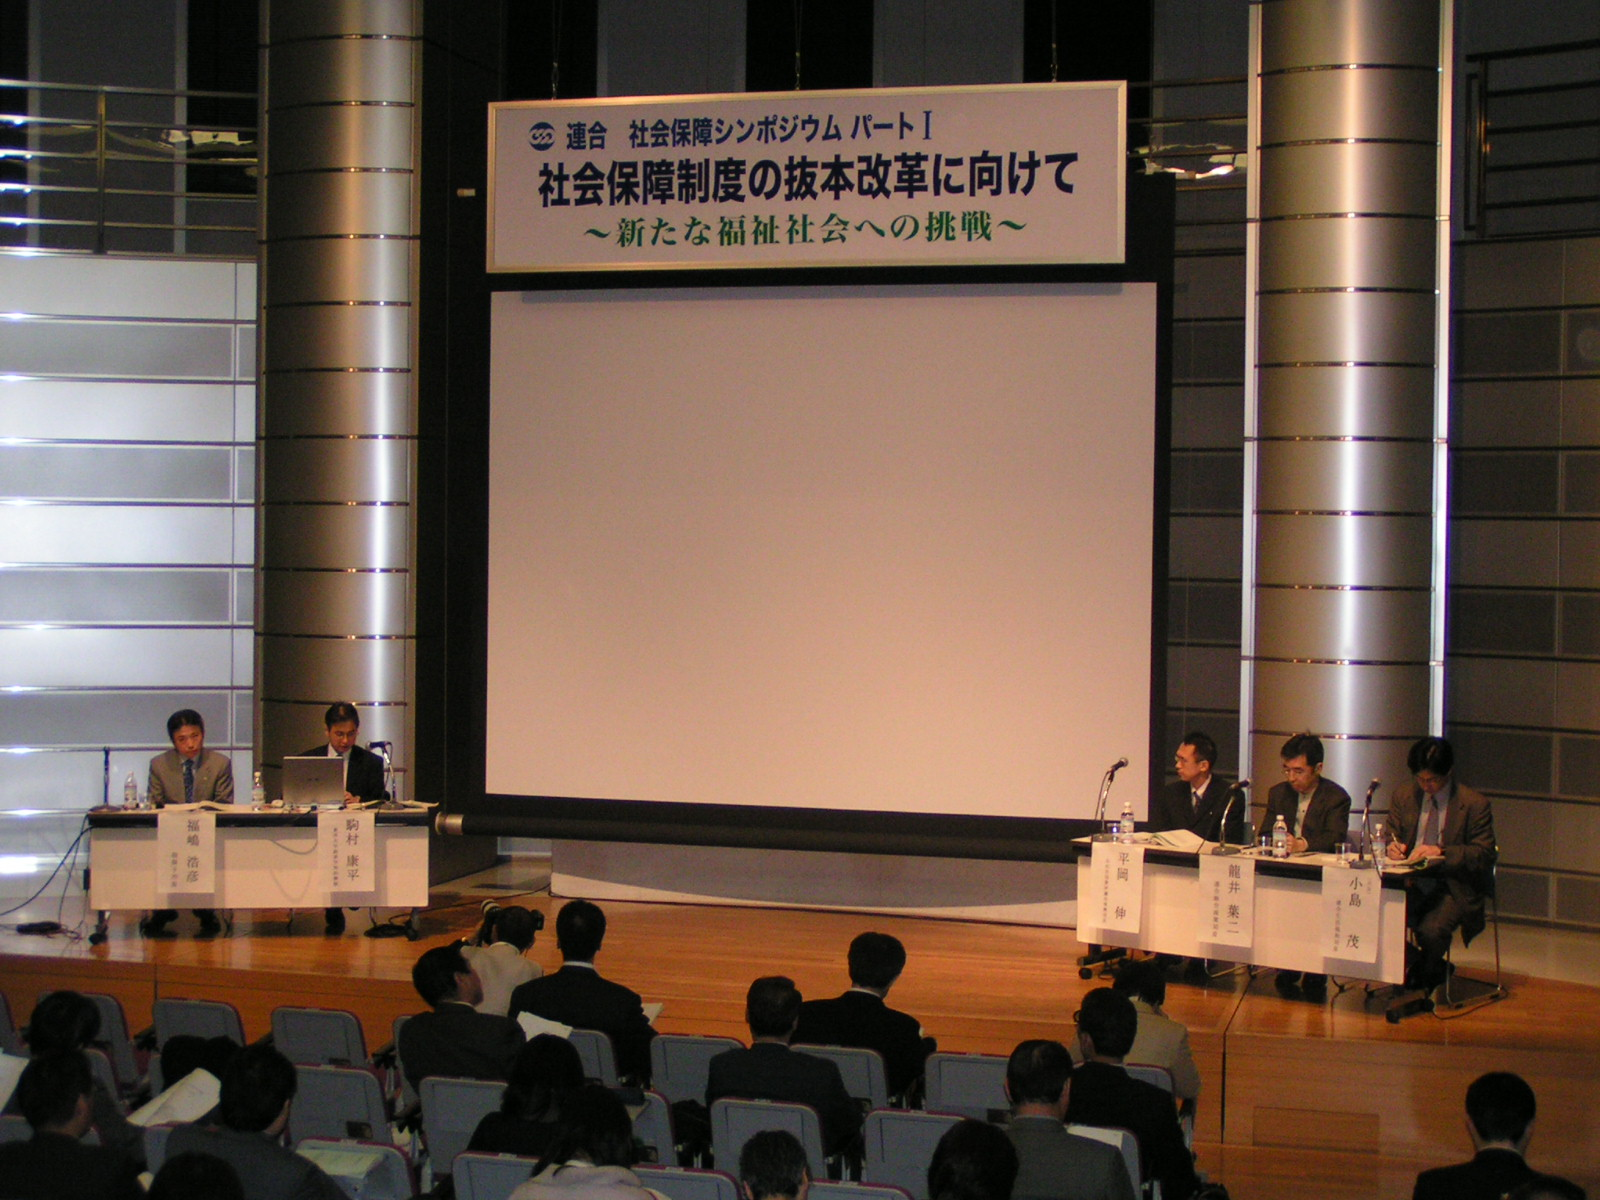 Photo: An opinion exchange being held on such topics as the future state of social security, the role of trade unions, and so forth. (February 8, Tokyo)